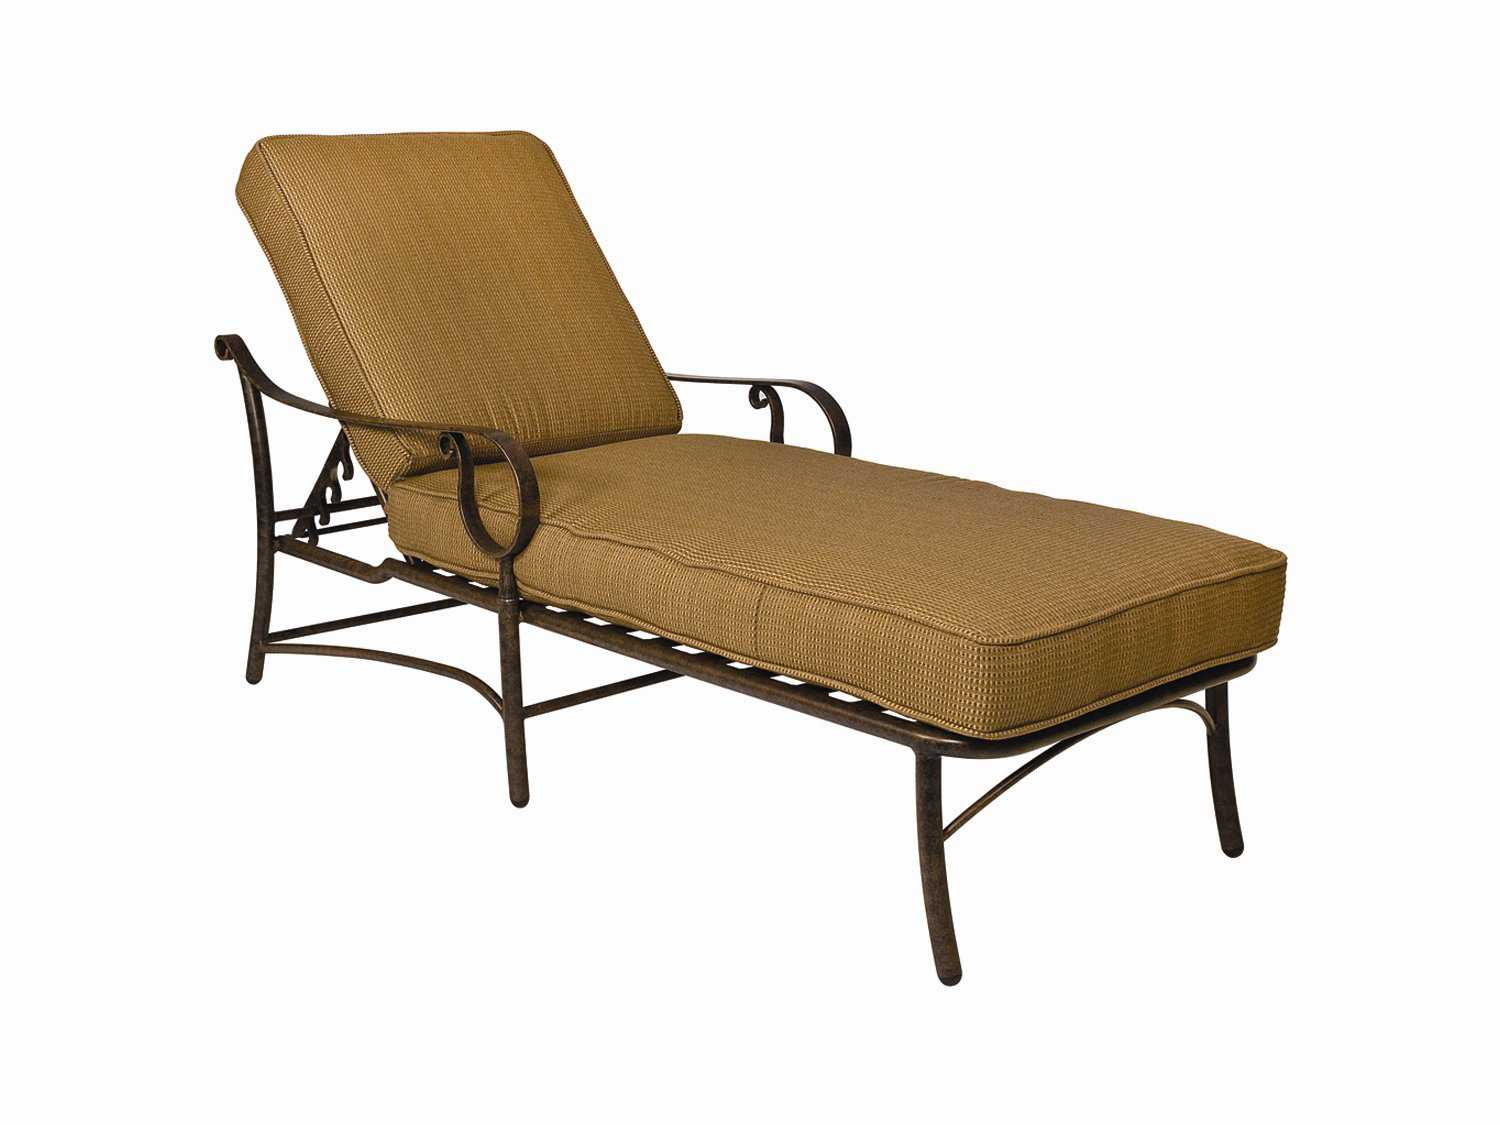 Woodard ridgecrest cushion aluminum adjustable chaise for Aluminum chaise lounges